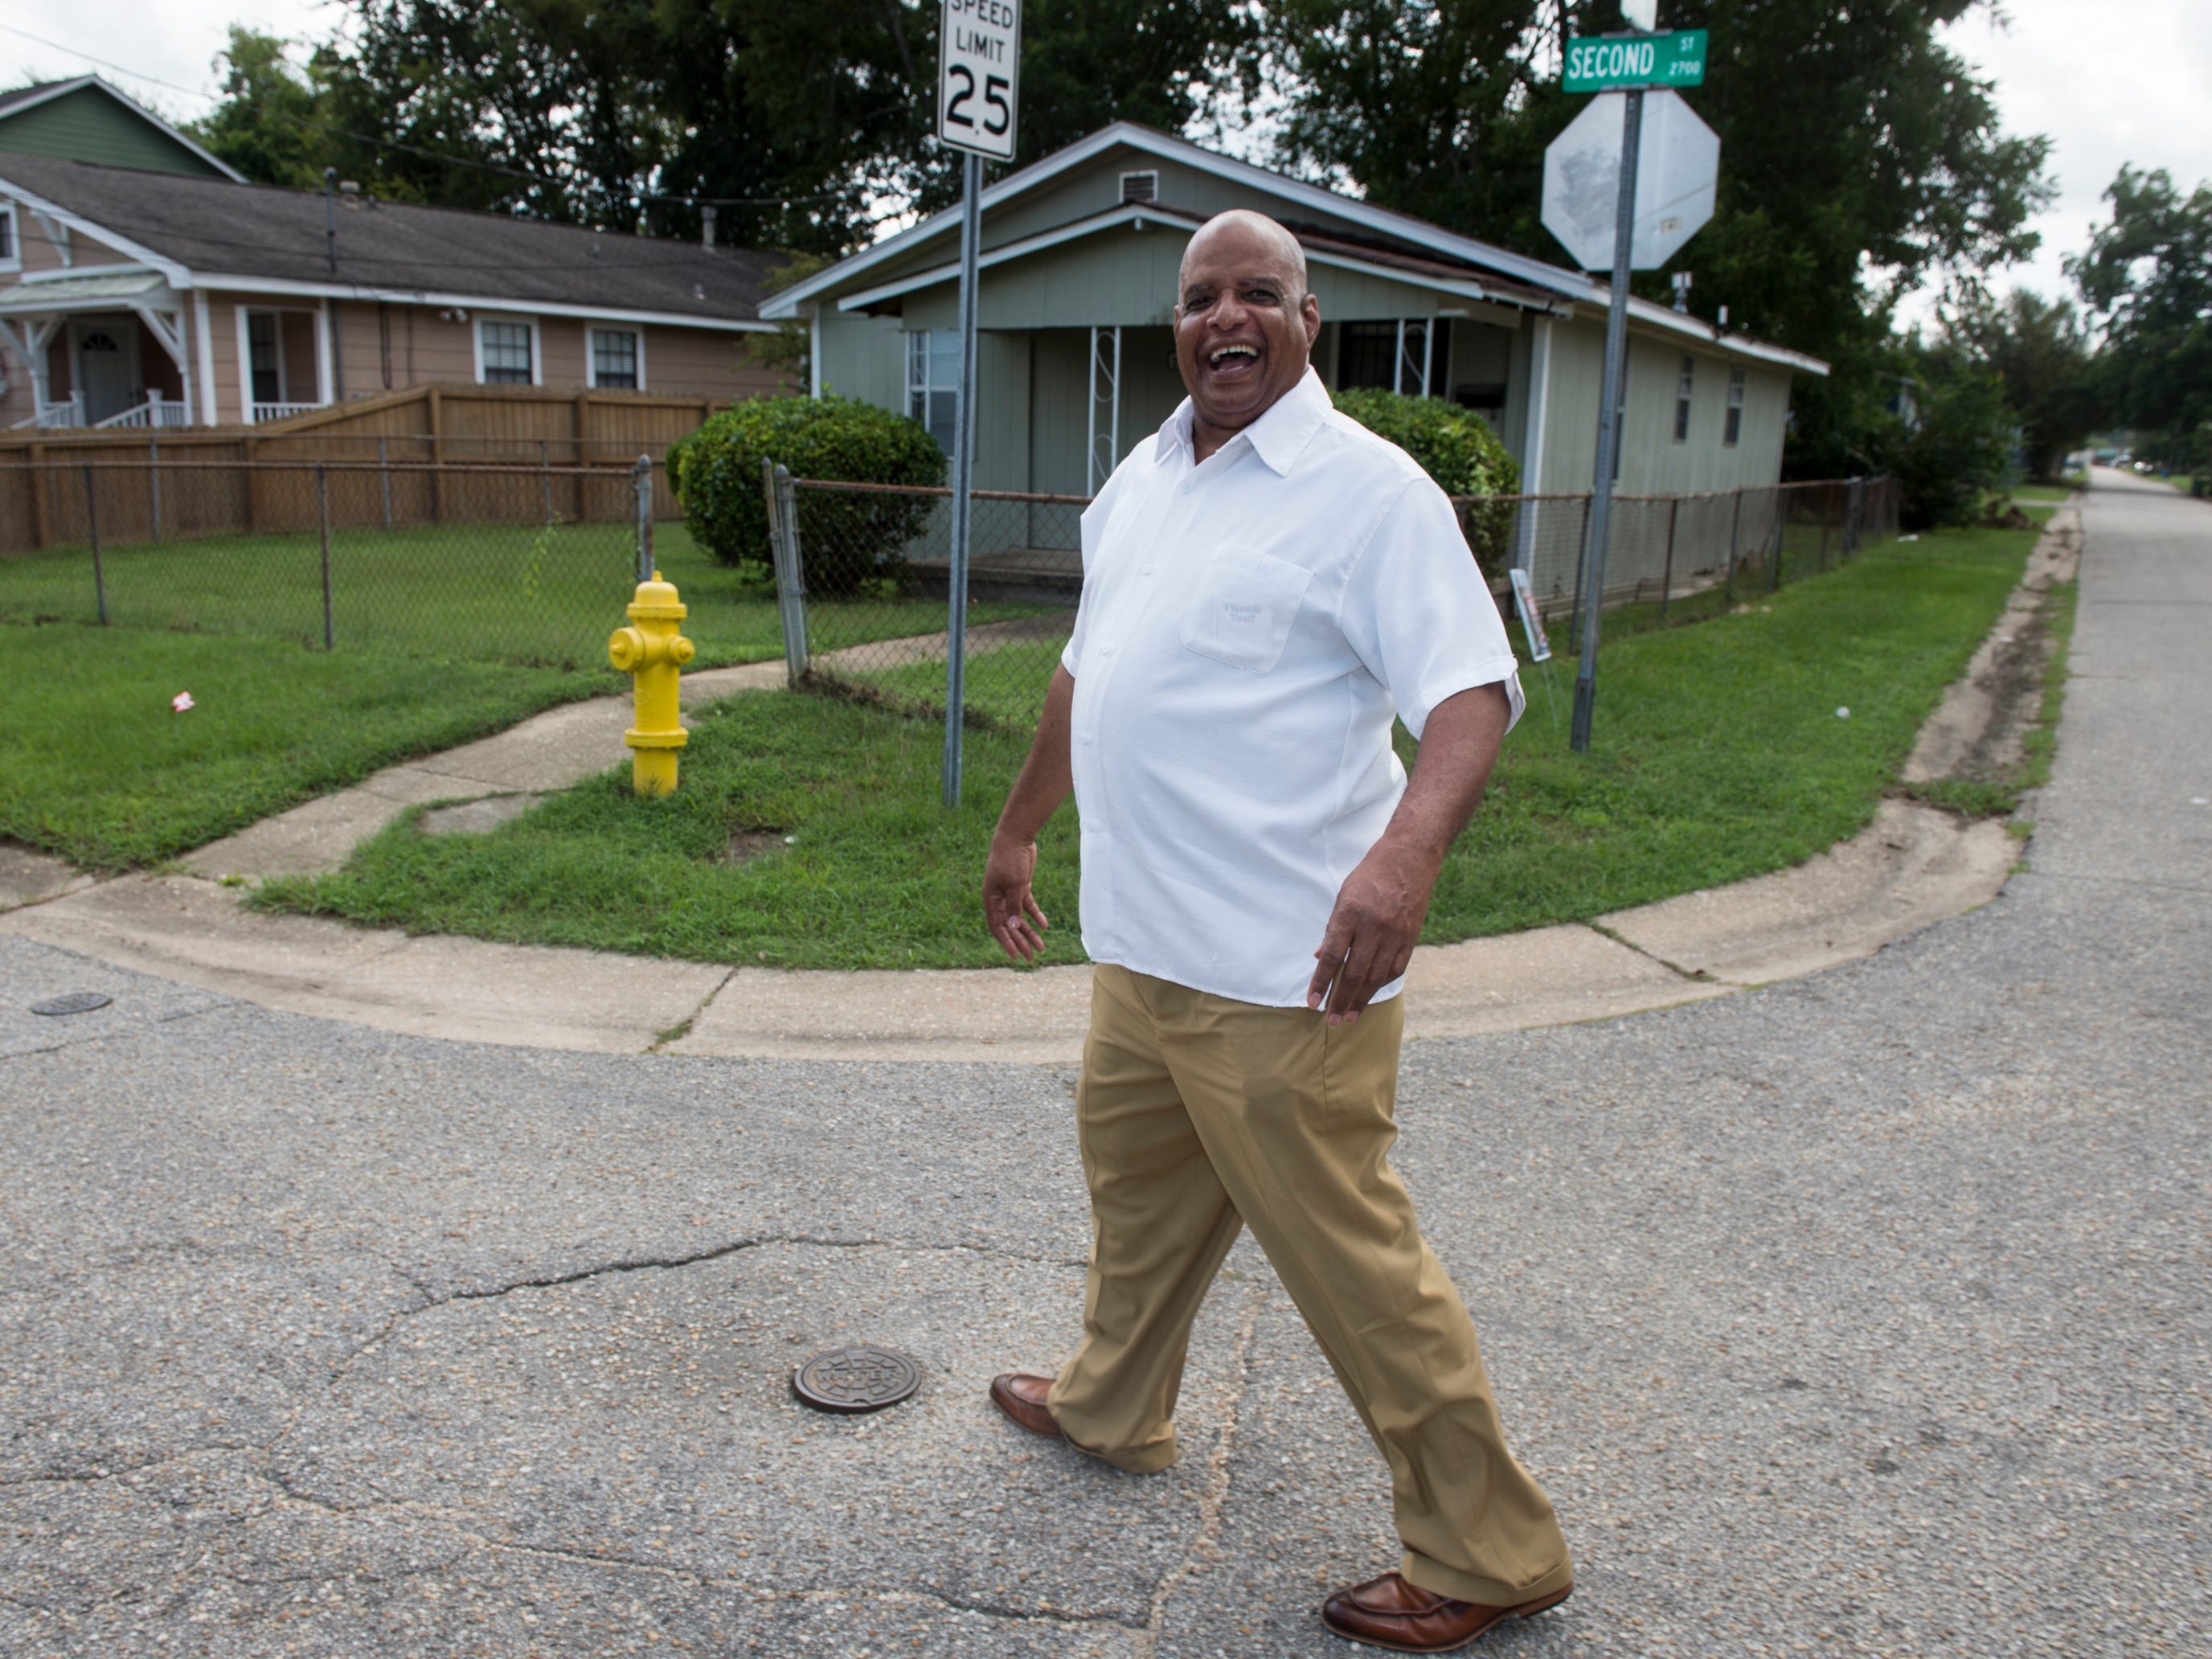 Rev. Willie Welch talks with neighbors as he walks down Second Street in Montgomery, Ala., on Monday, Sept. 10, 2018.